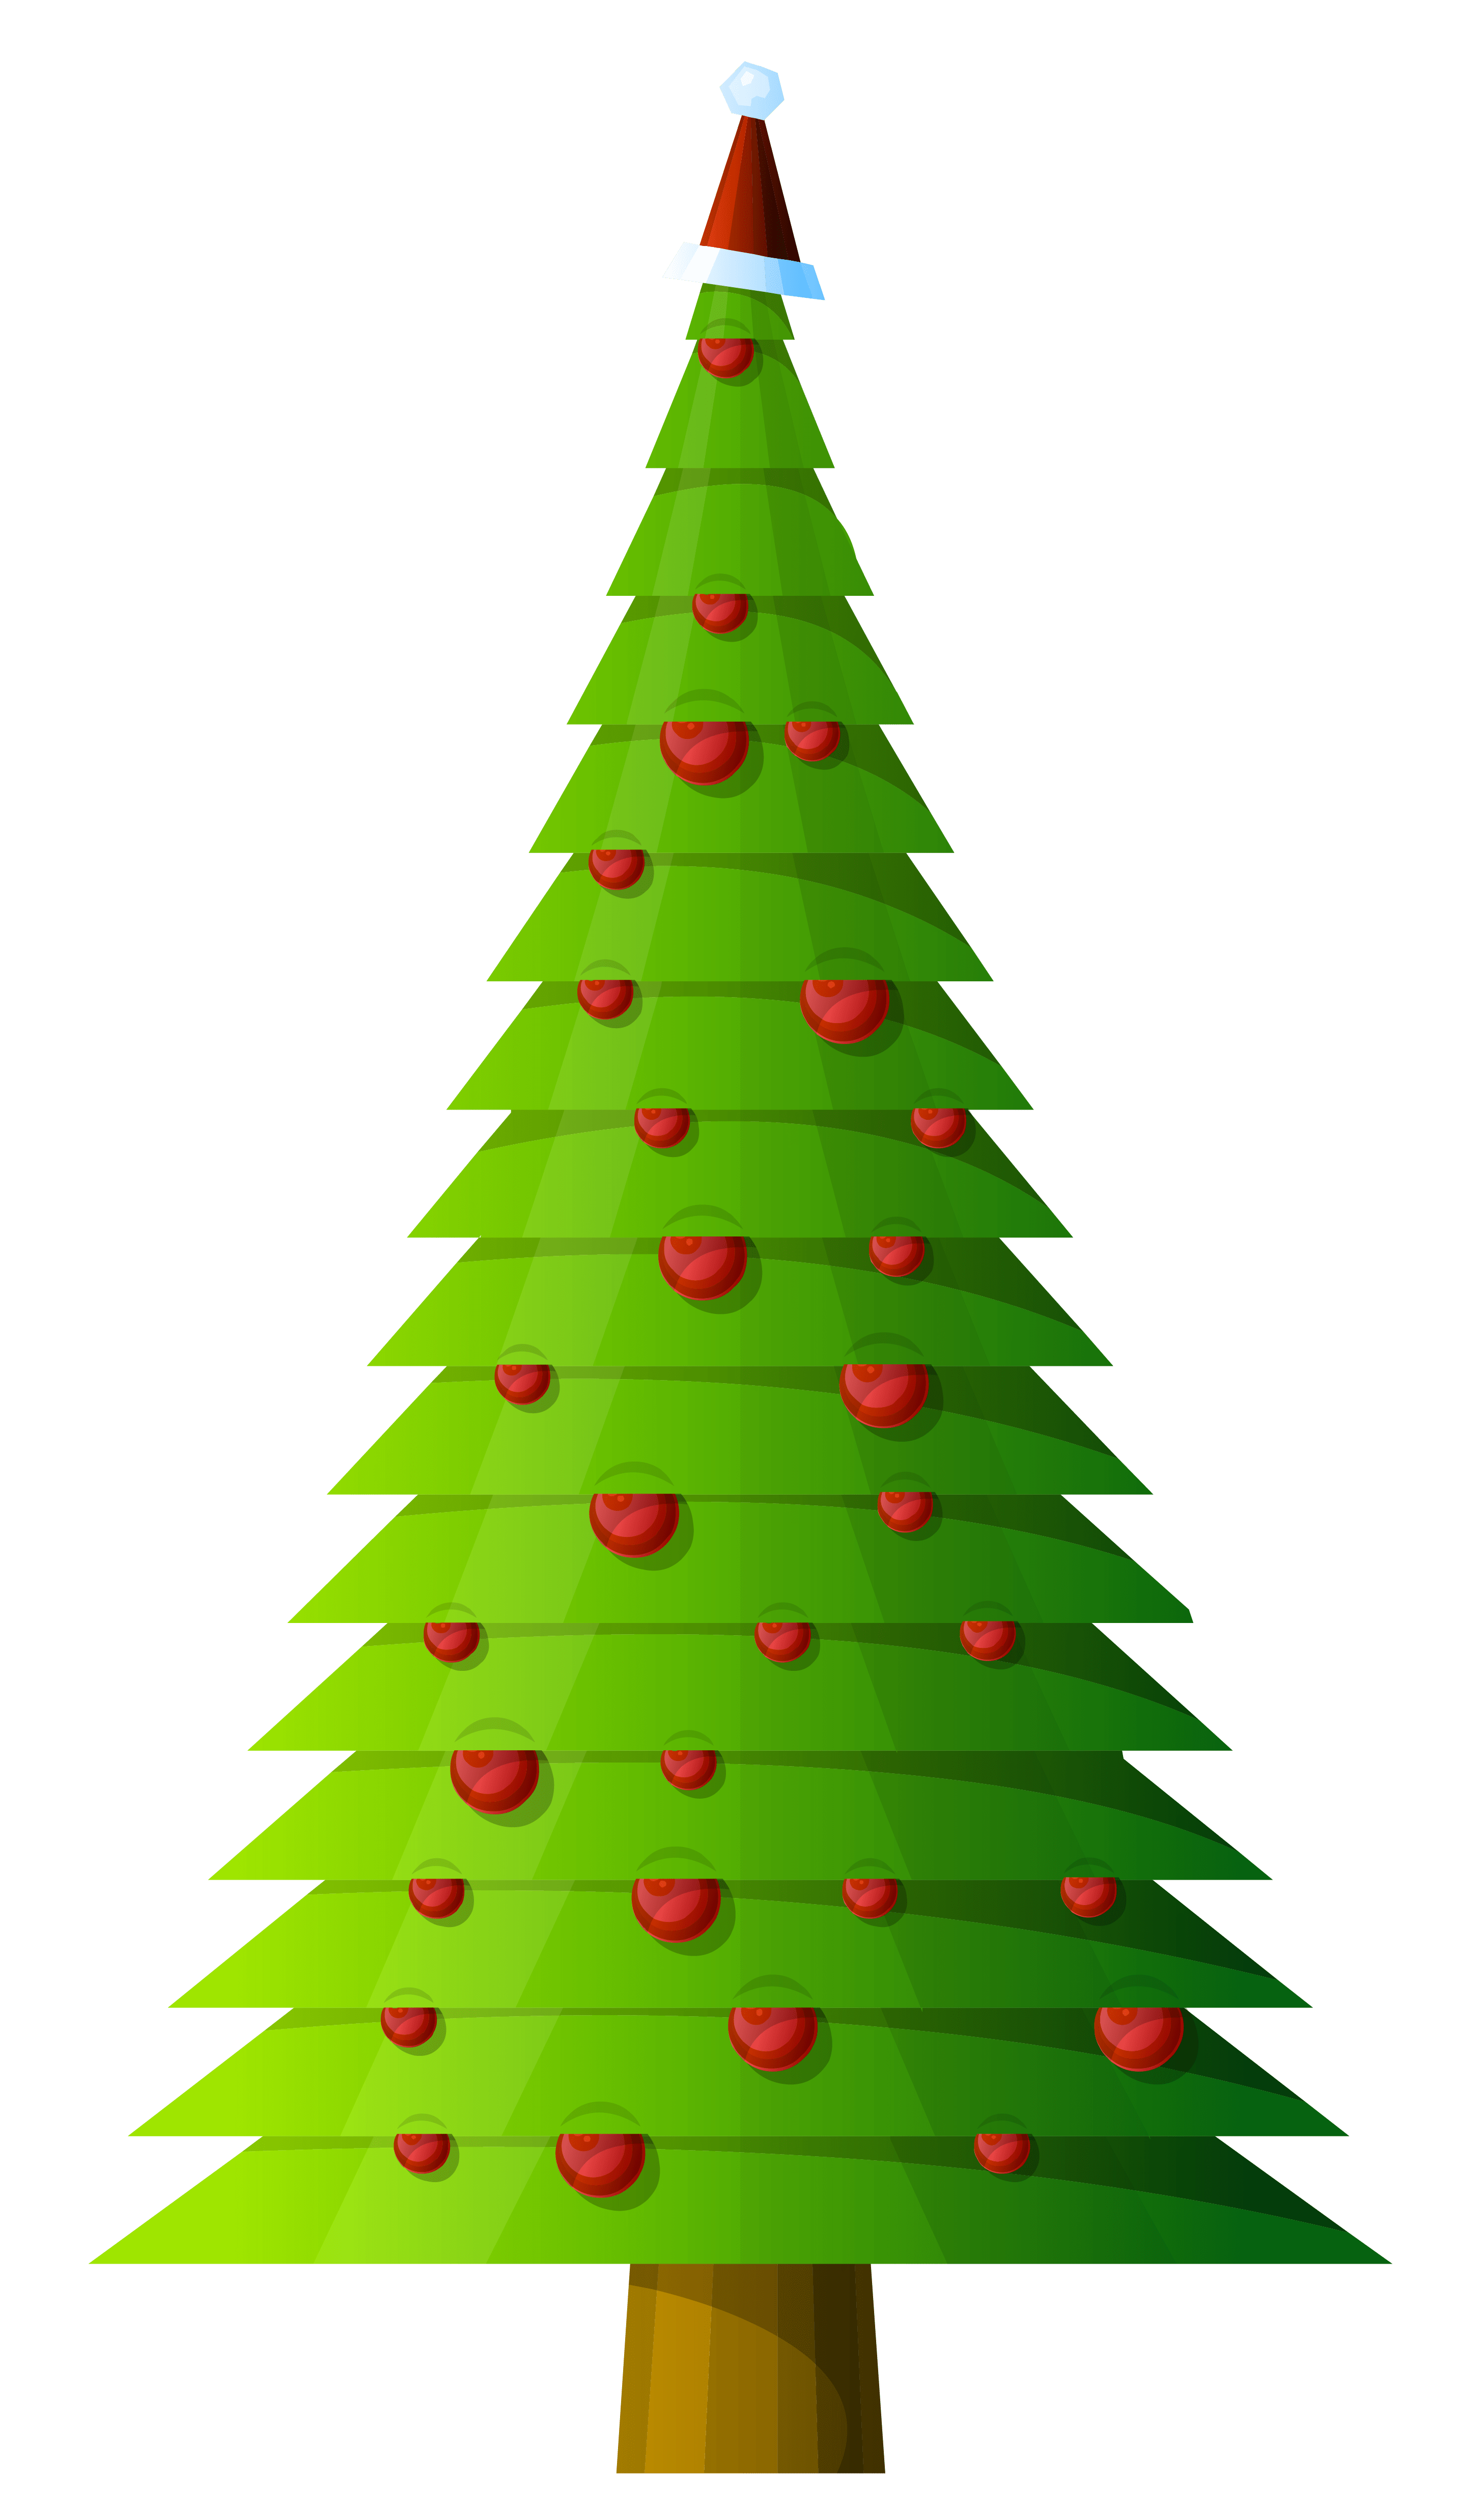 Modern Christmas Tree Clip Art – Merry Christmas And Happy New Year 2018 vector freeuse